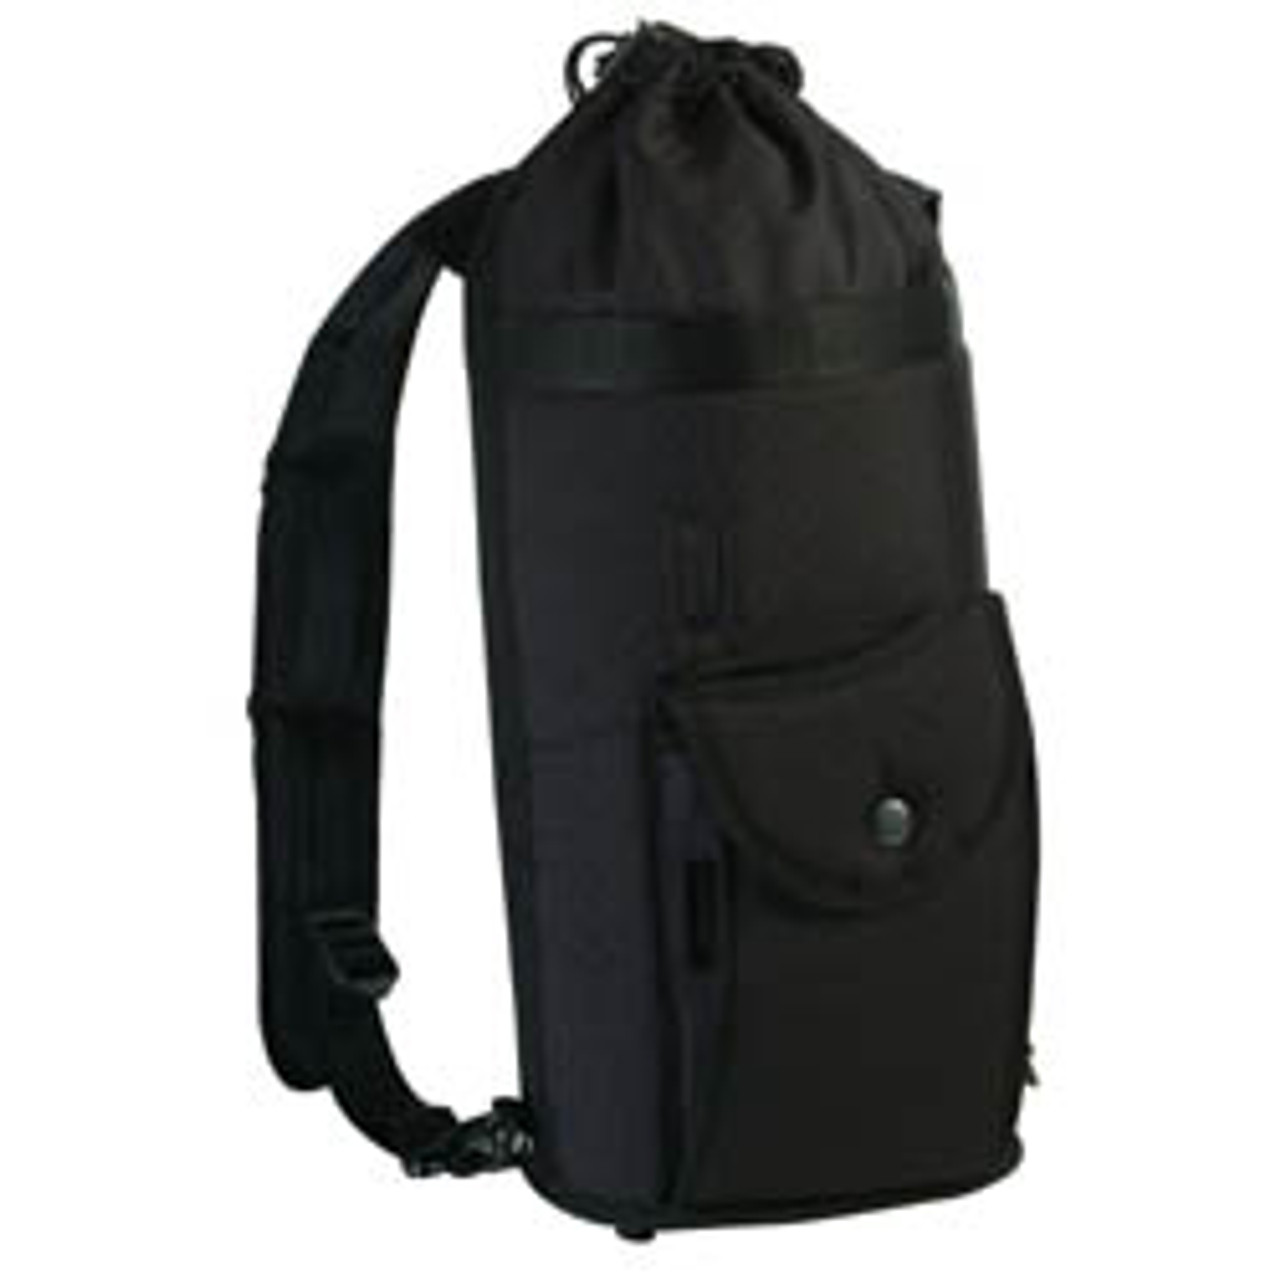 Backpack Style Oxygen Cylinder Bag for A, M6, ML6, M7 and C Cylinders